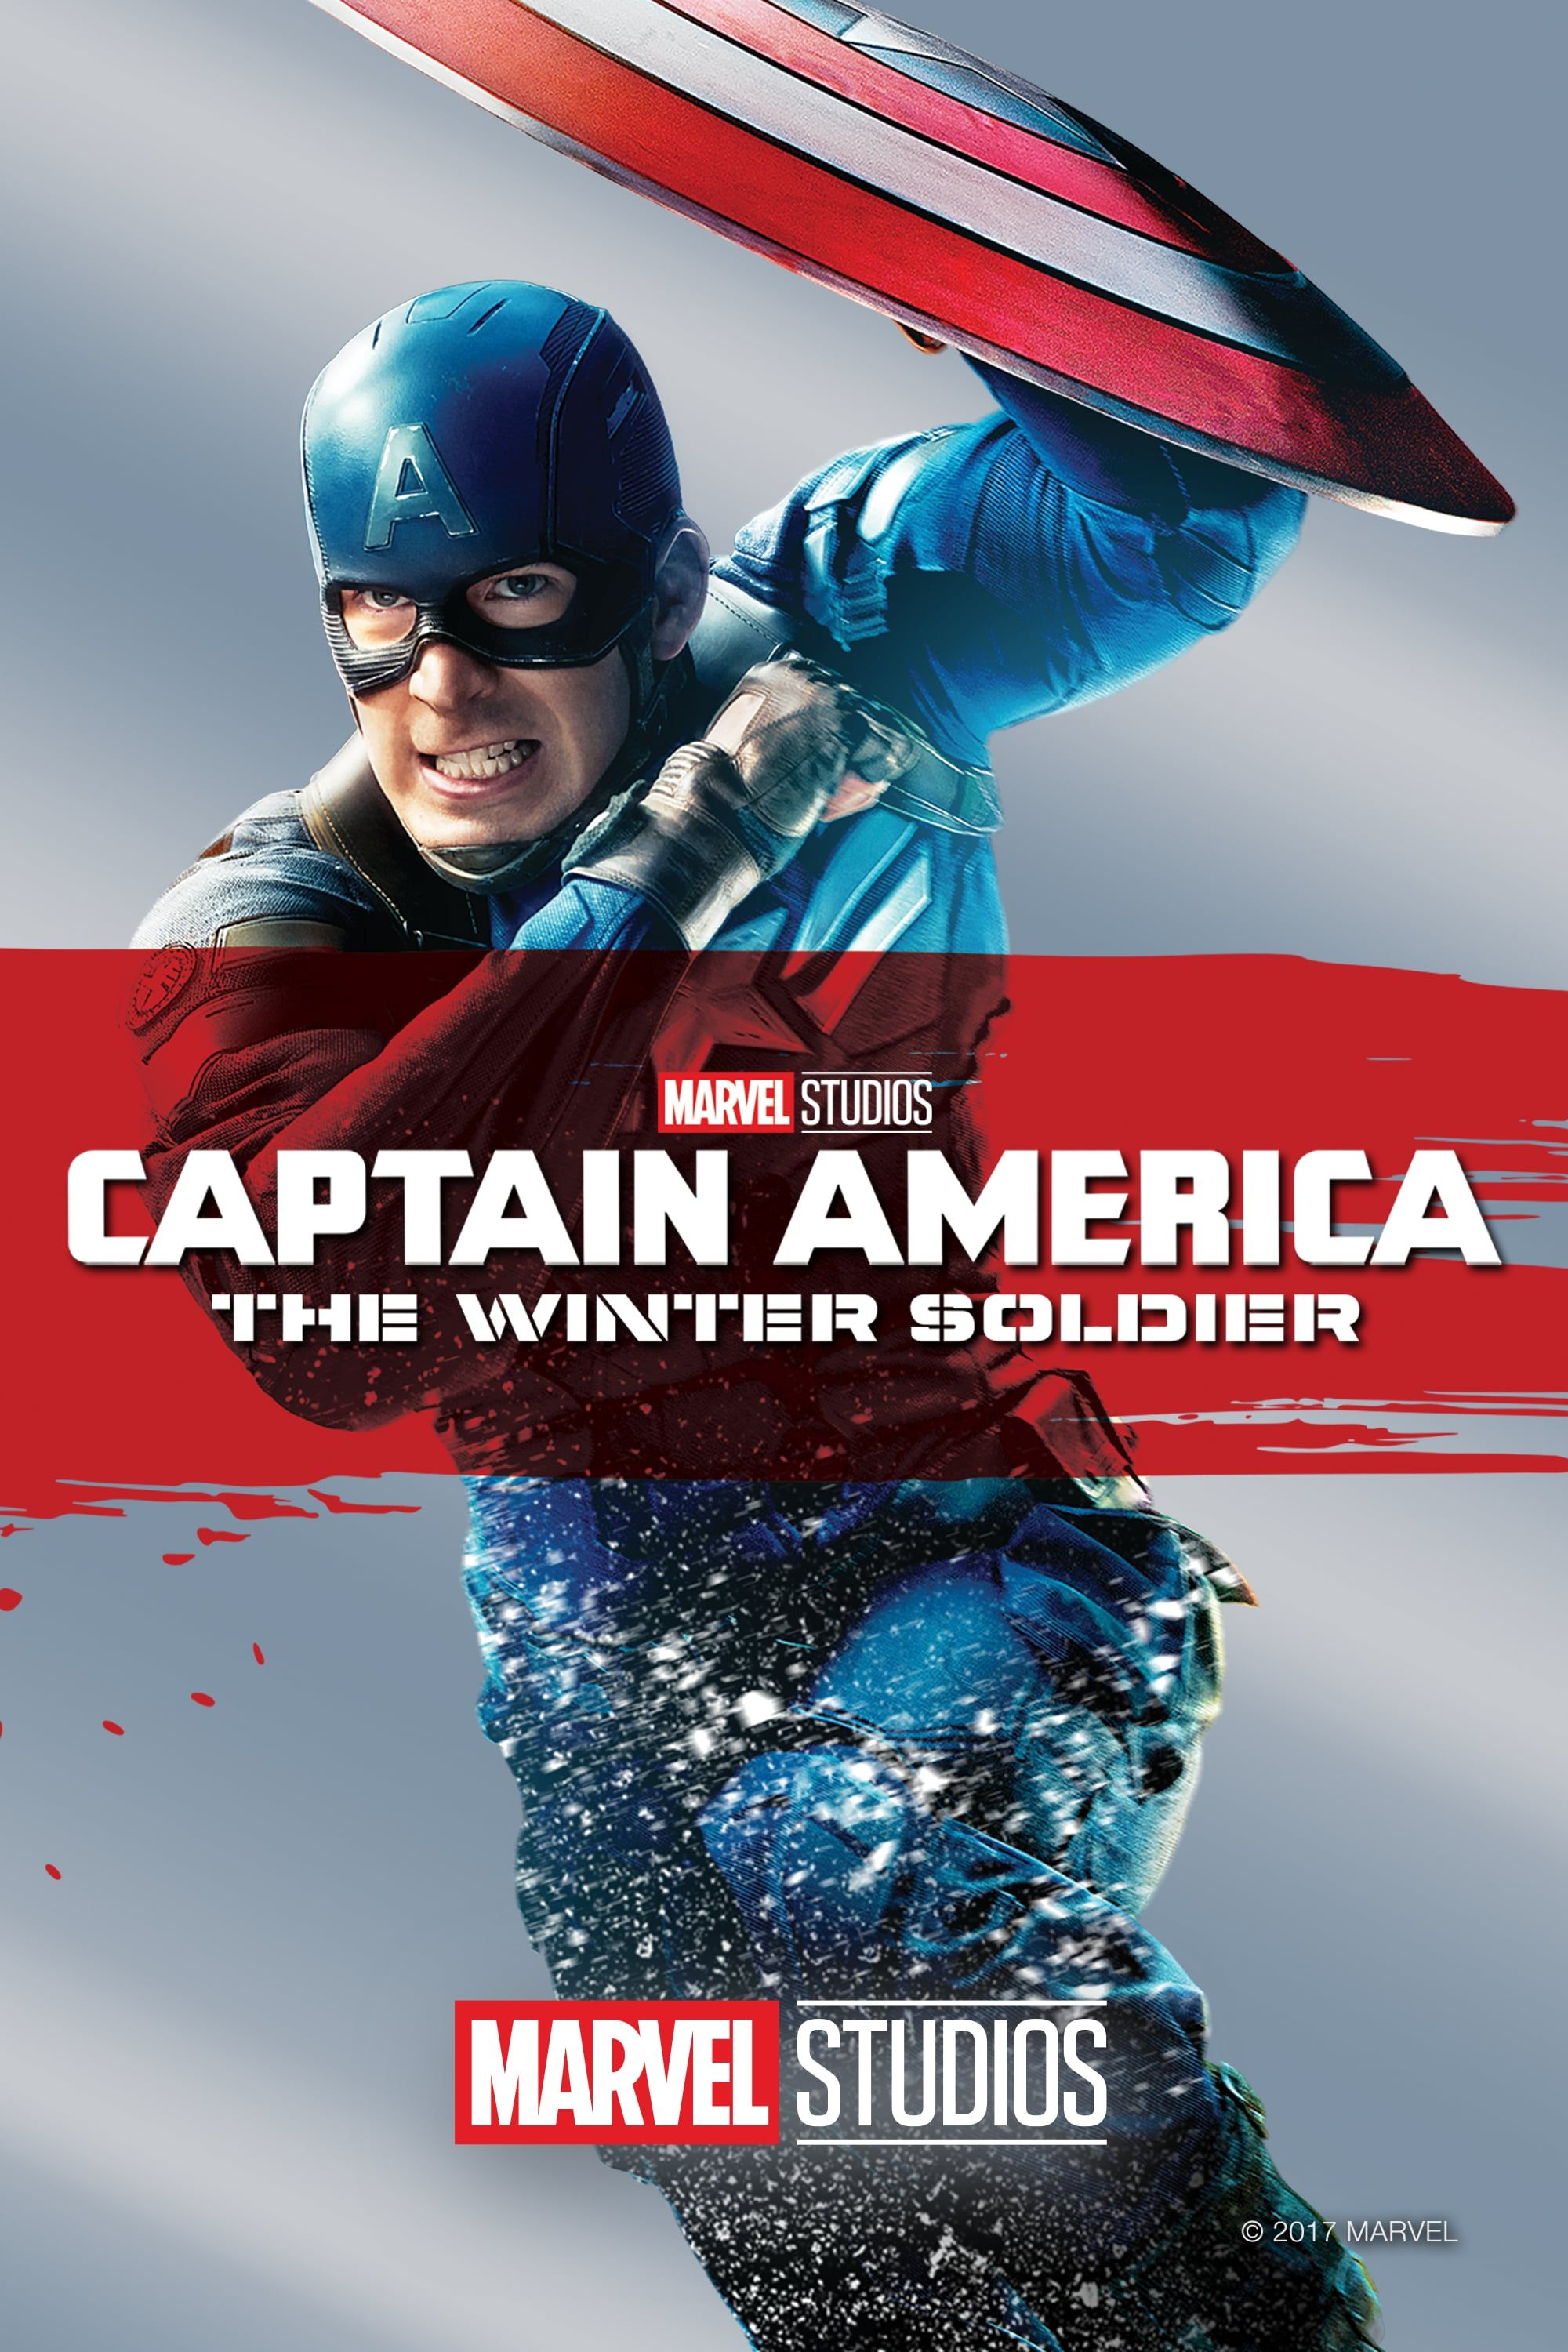 Captain America The Winter Soldier 2014 Dual Audio Eng Hindi 480p Bluray Captain America Winter Captain America Winter Soldier Captain America